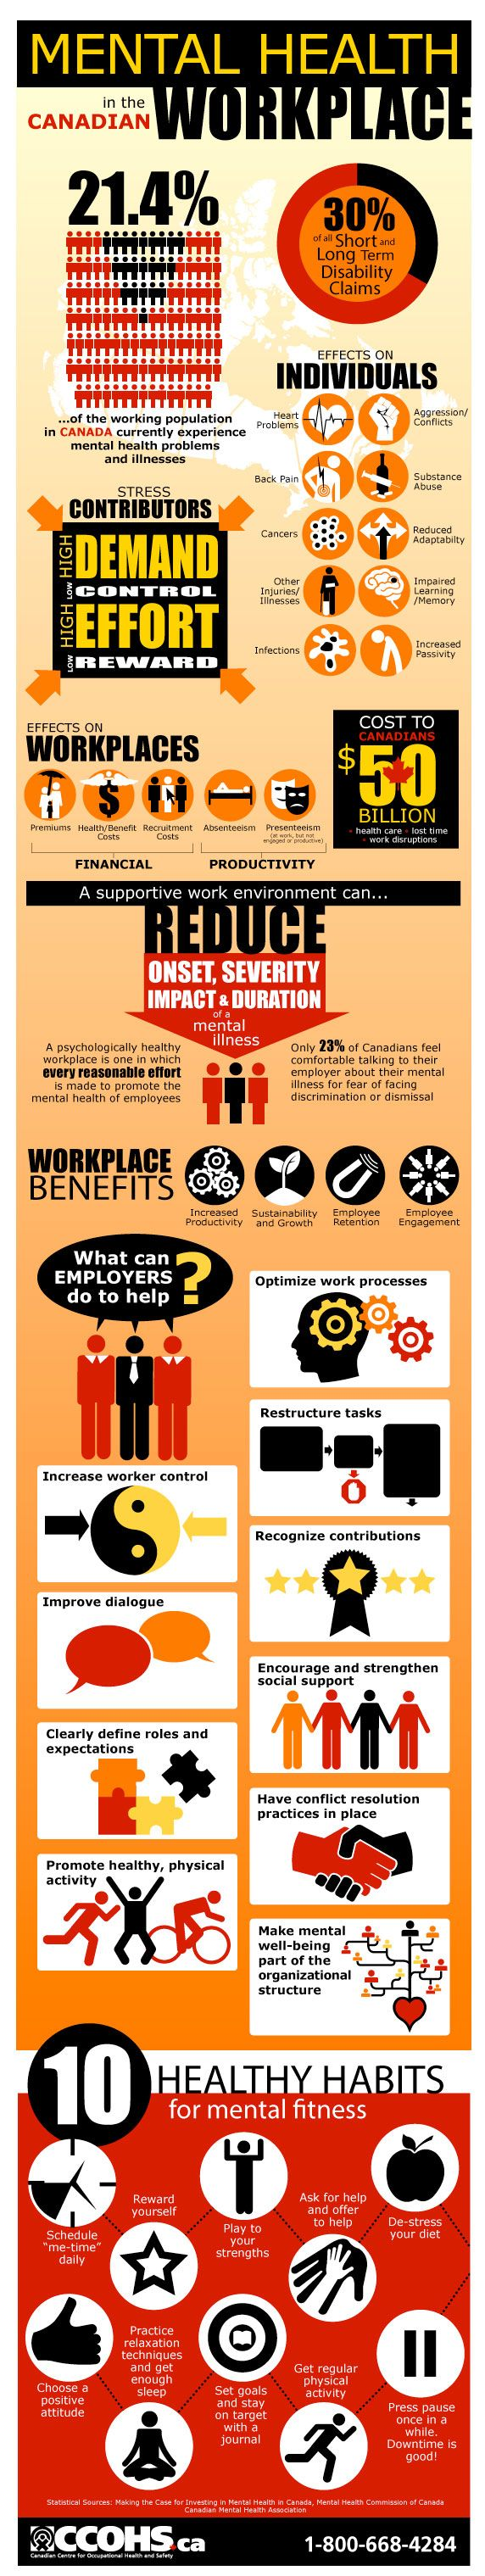 Mental Health in Canadian Workplaces infographic. Visit